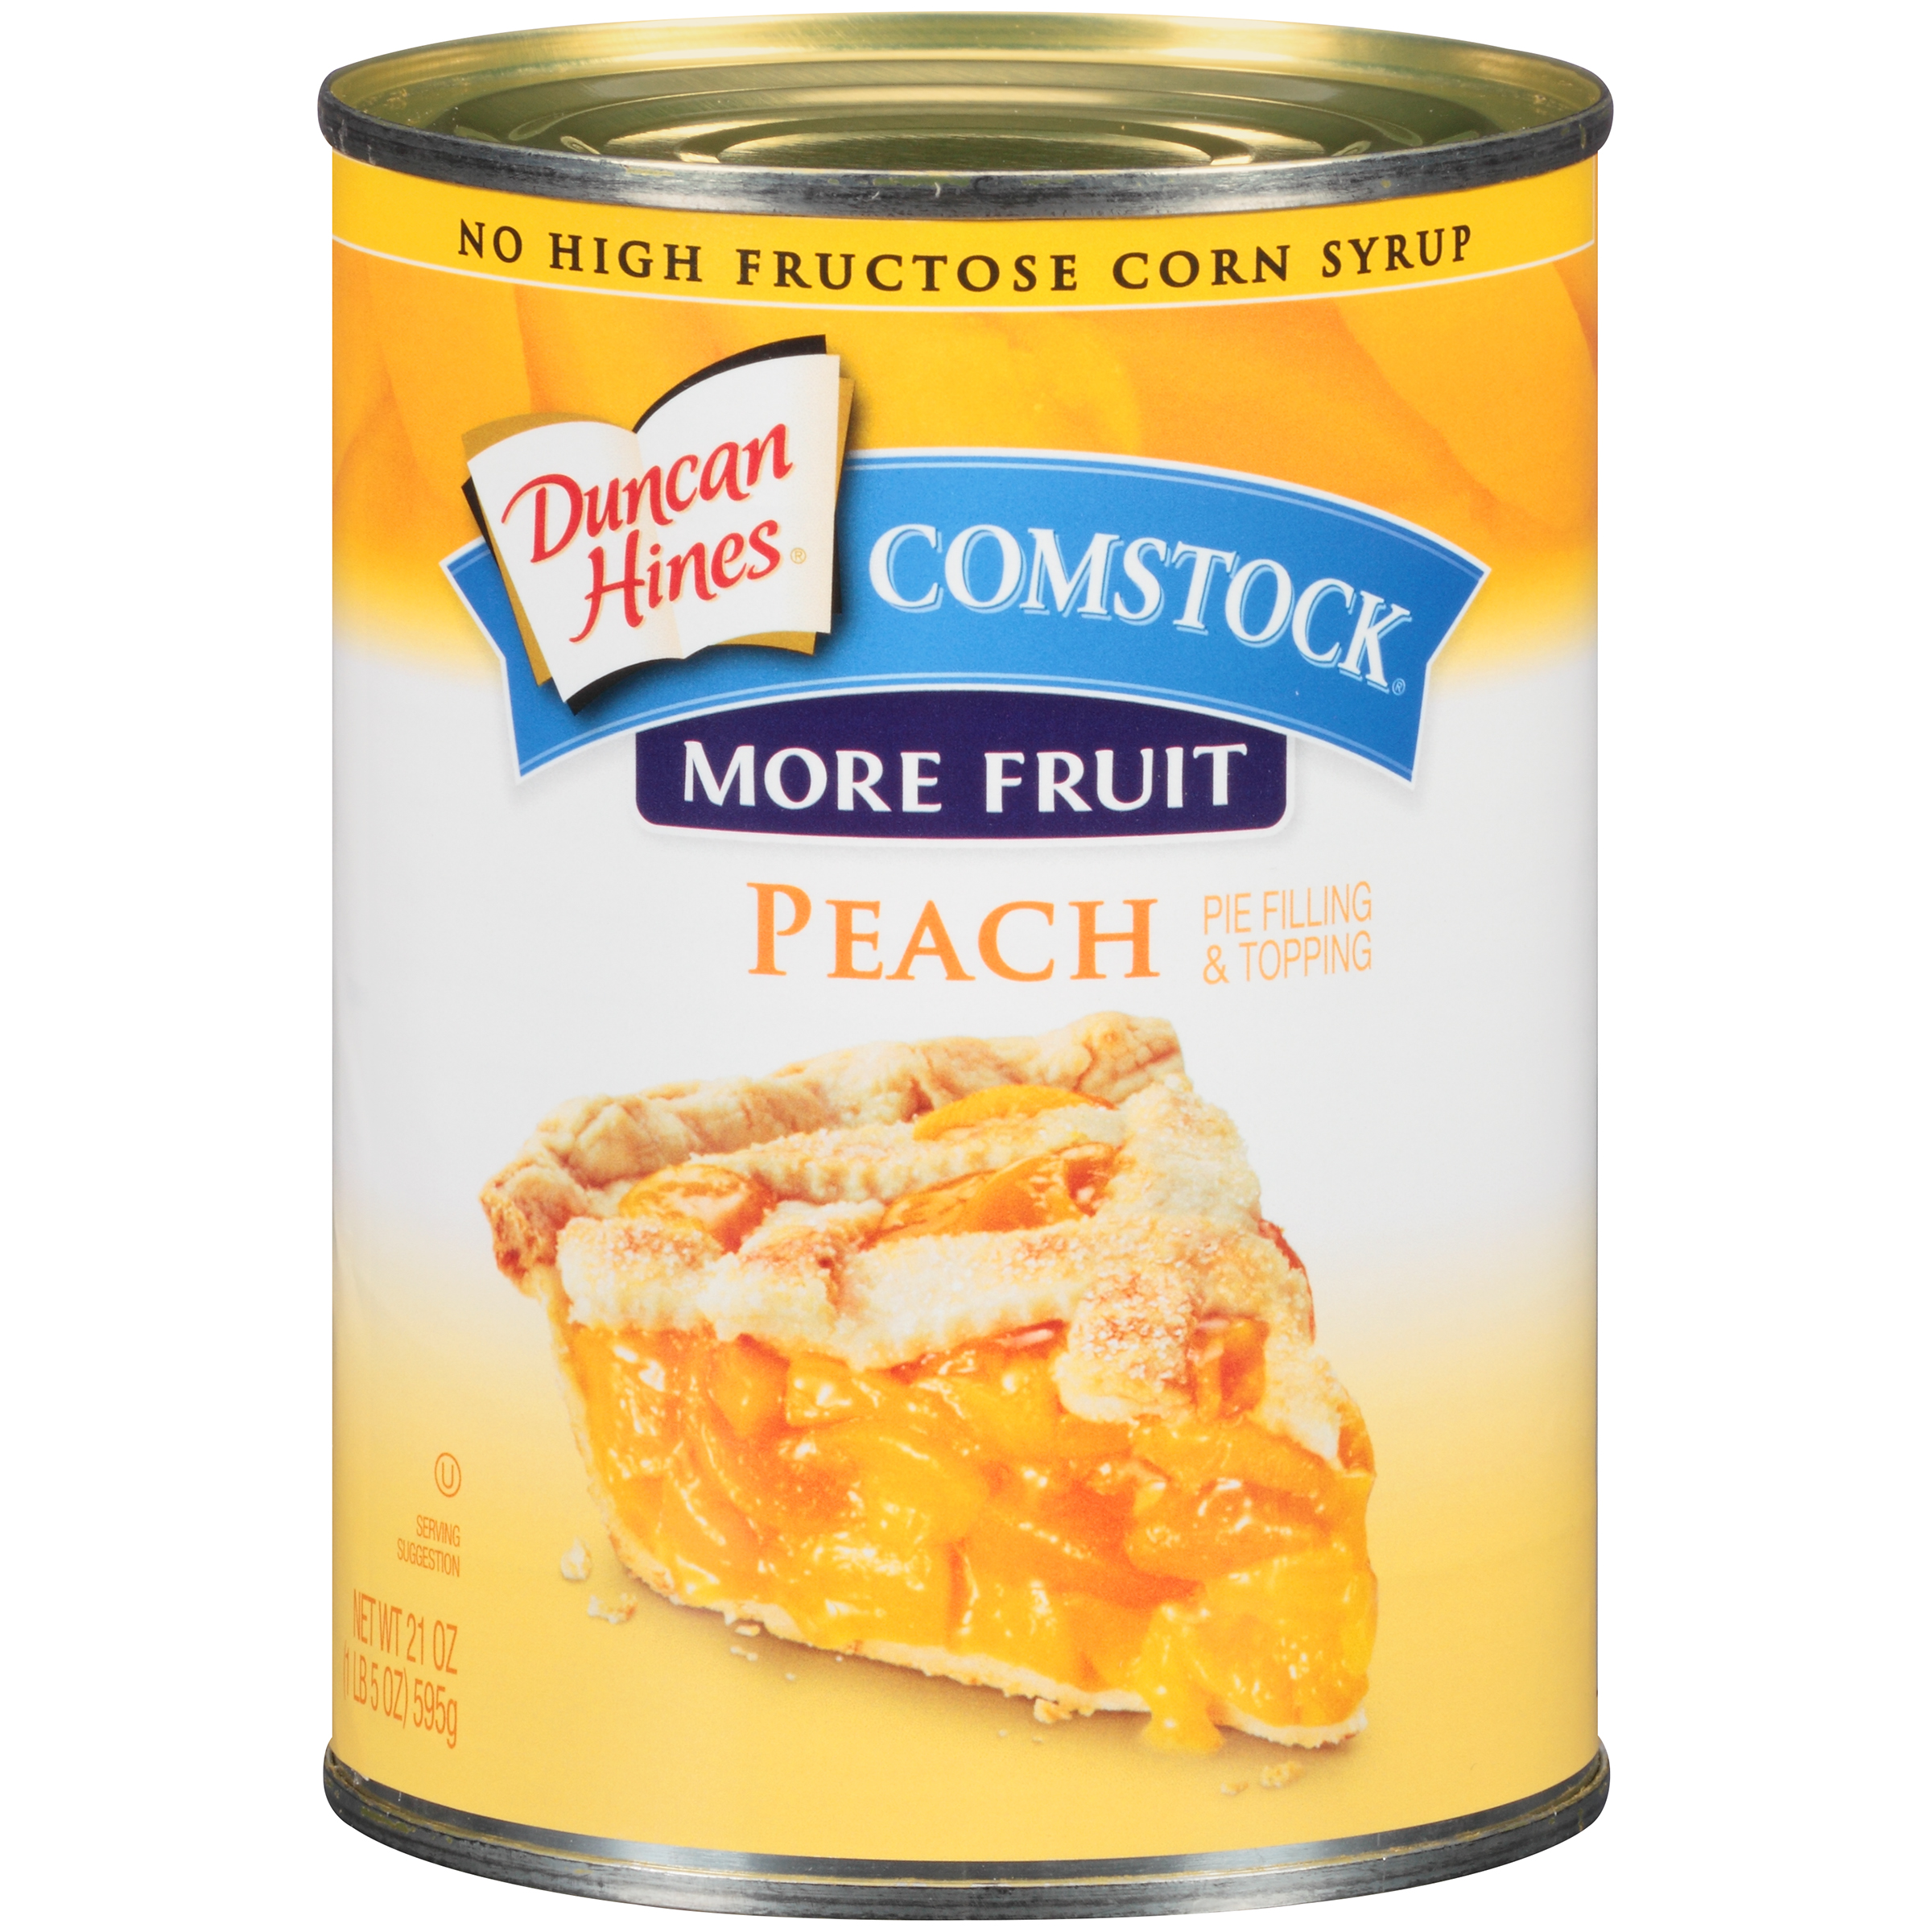 Duncan Hines Comstock More Fruit Peach Pie Filling & Topping 21 oz. Can by Pinnacle Foods